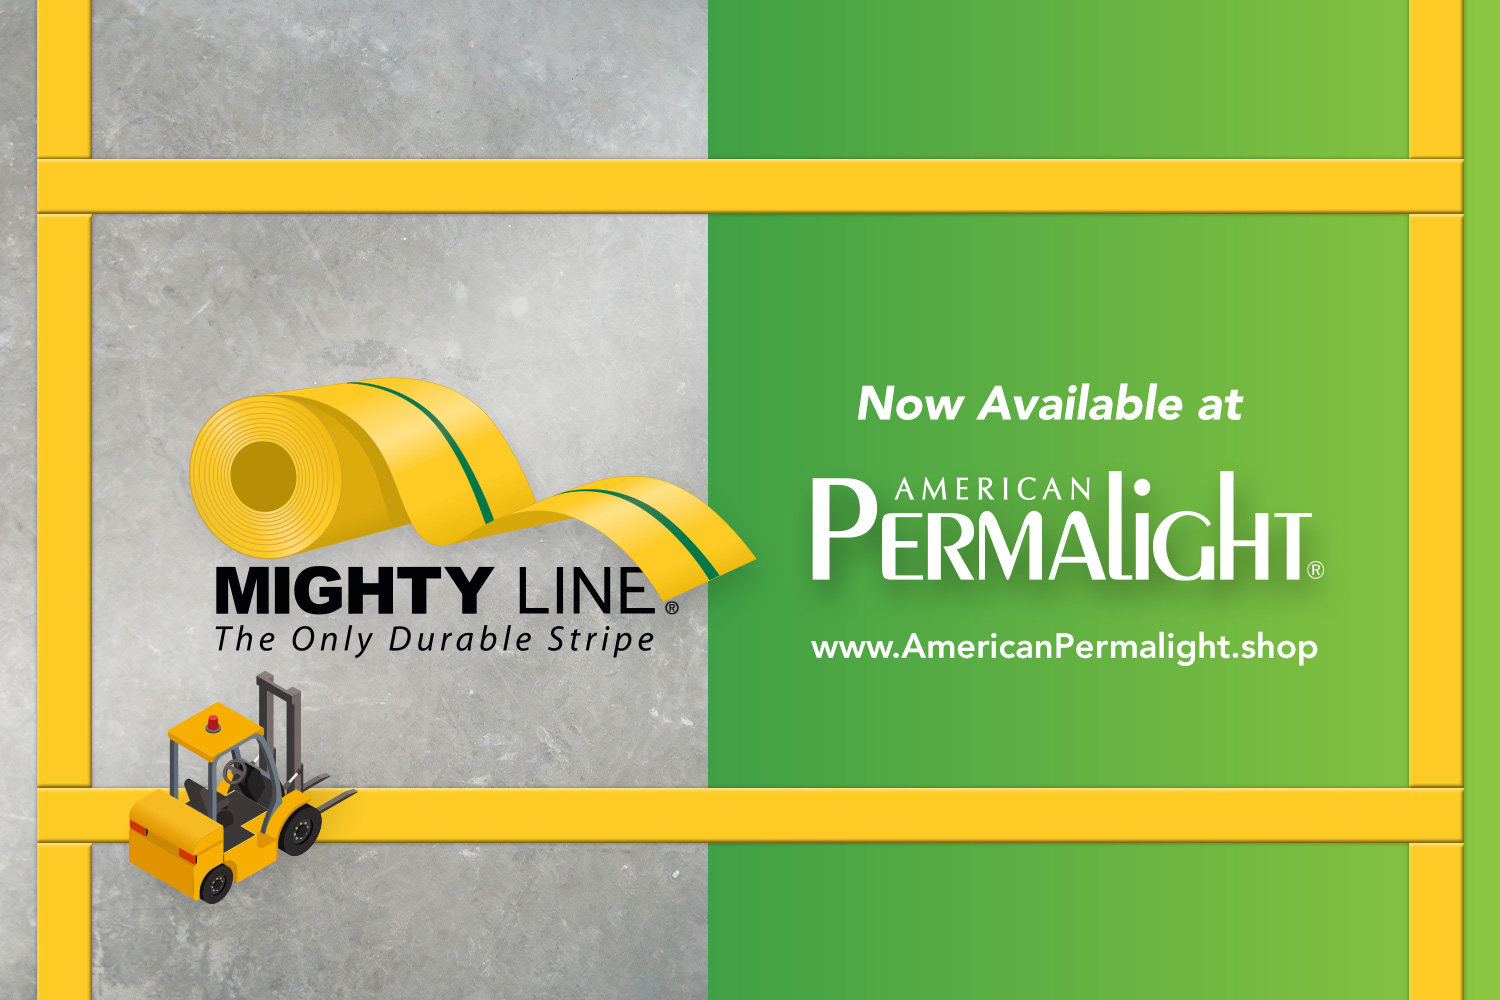 Mighty Line® Safety Floor Tape Products Now Available at American PERMALIGHT®